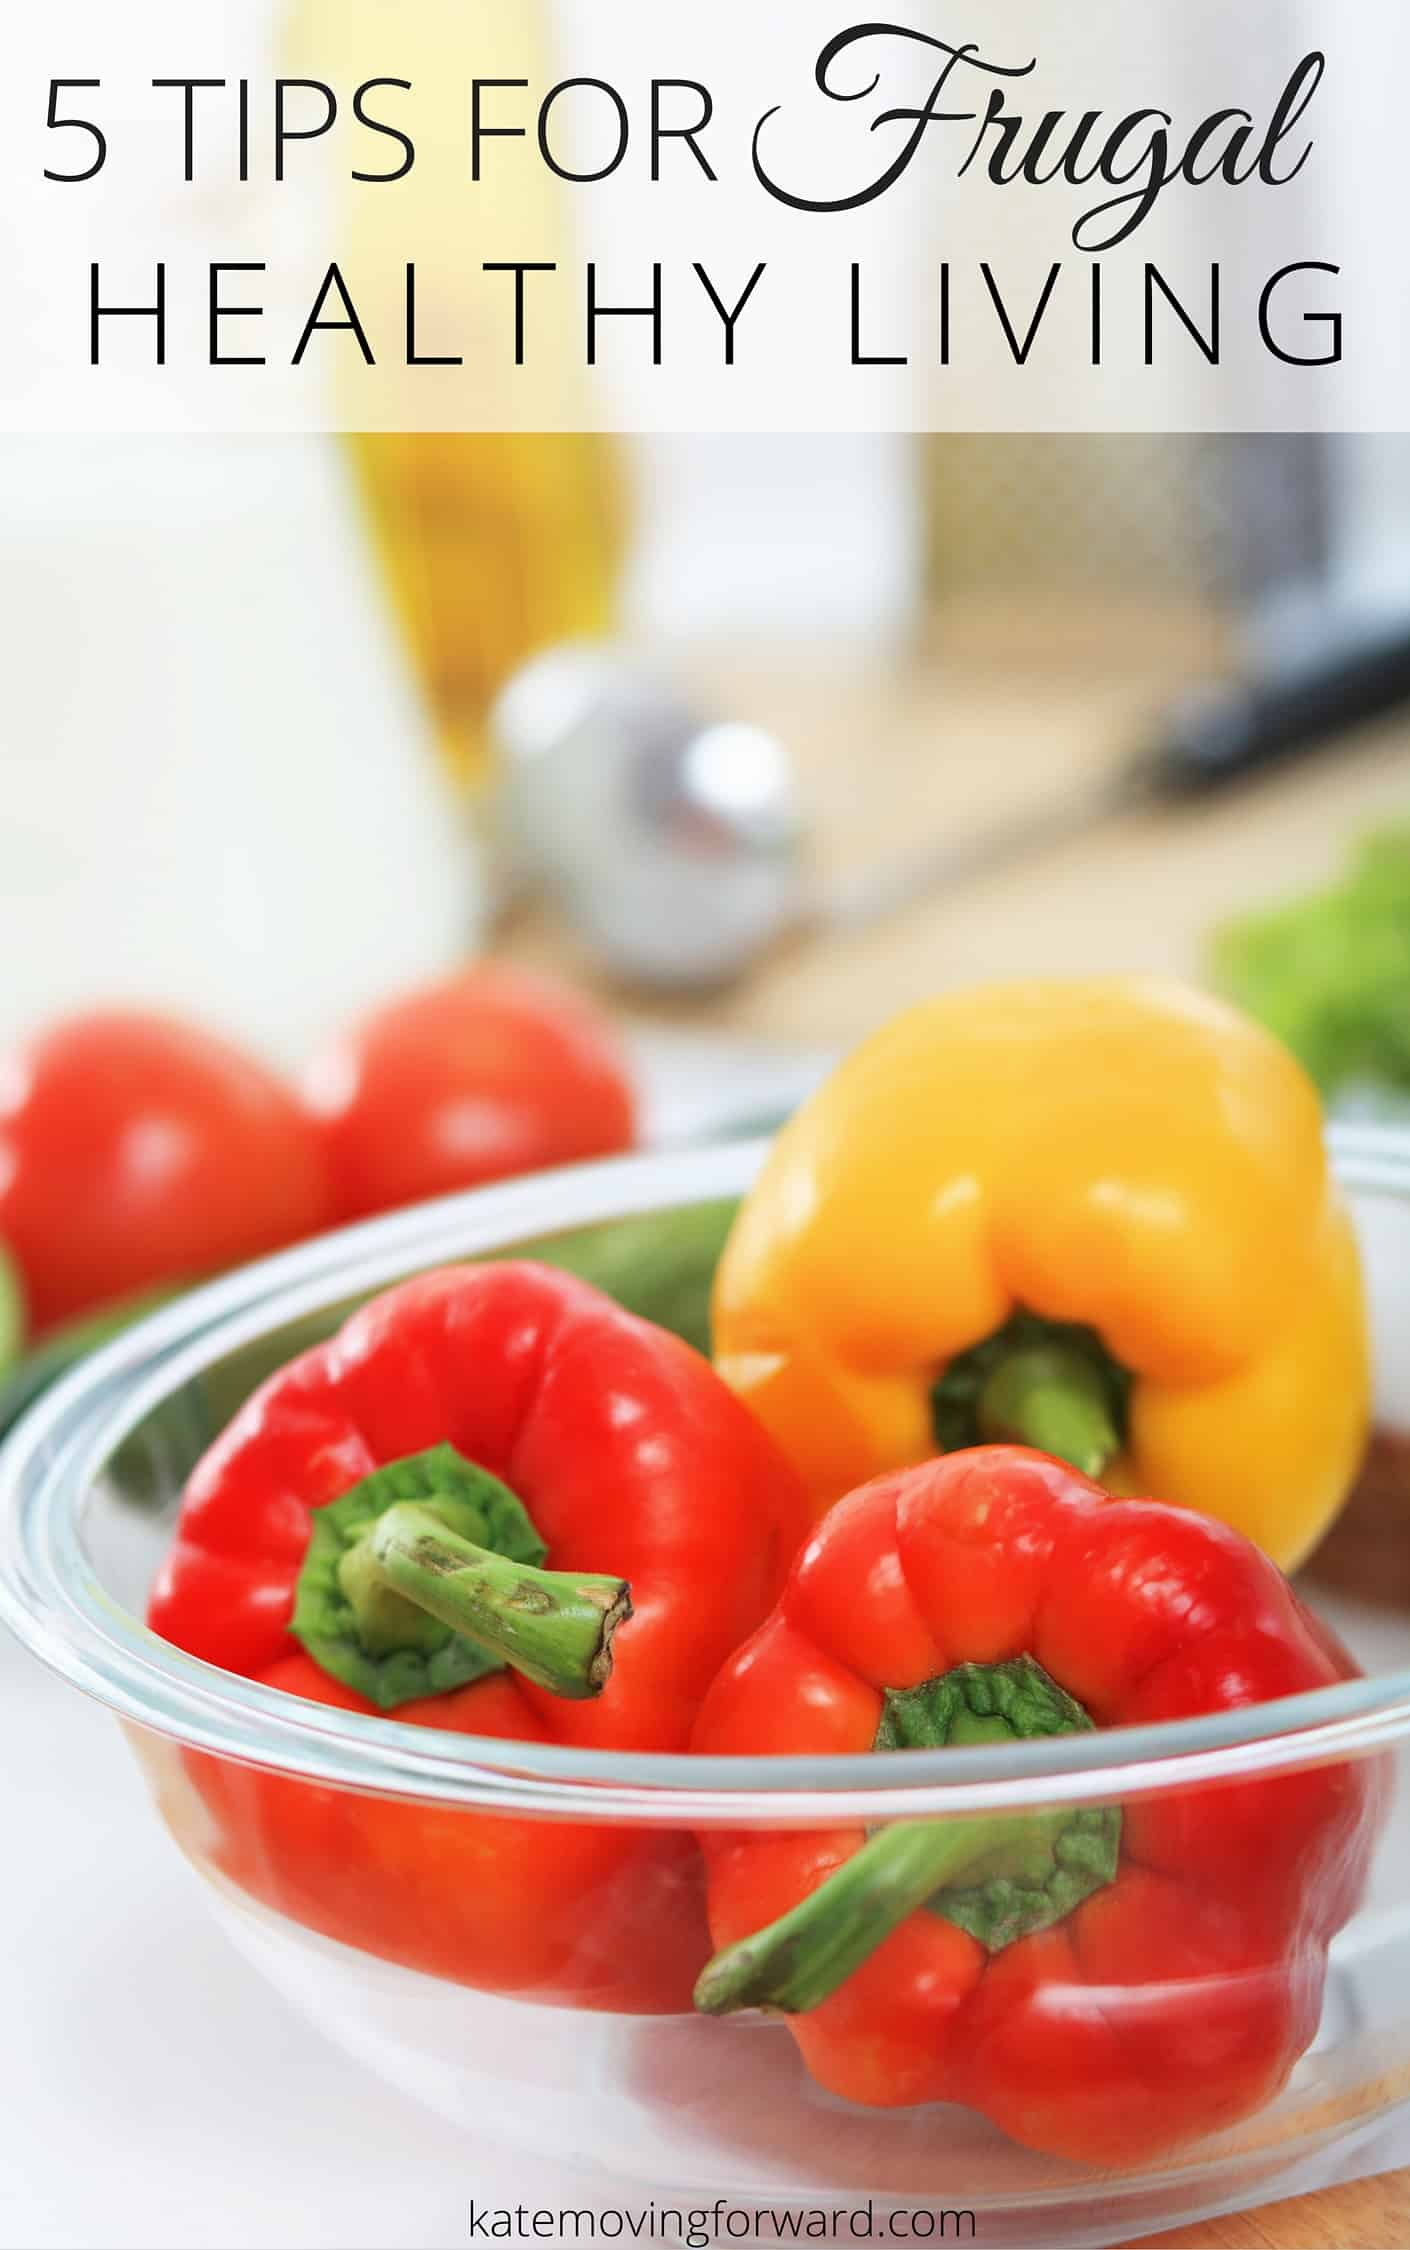 5 Tips for Frugal Healthy Living - Yes, you CAN live healthier while on a budget and without overspending! Great tips for simple and cheap ways to eat healthier!